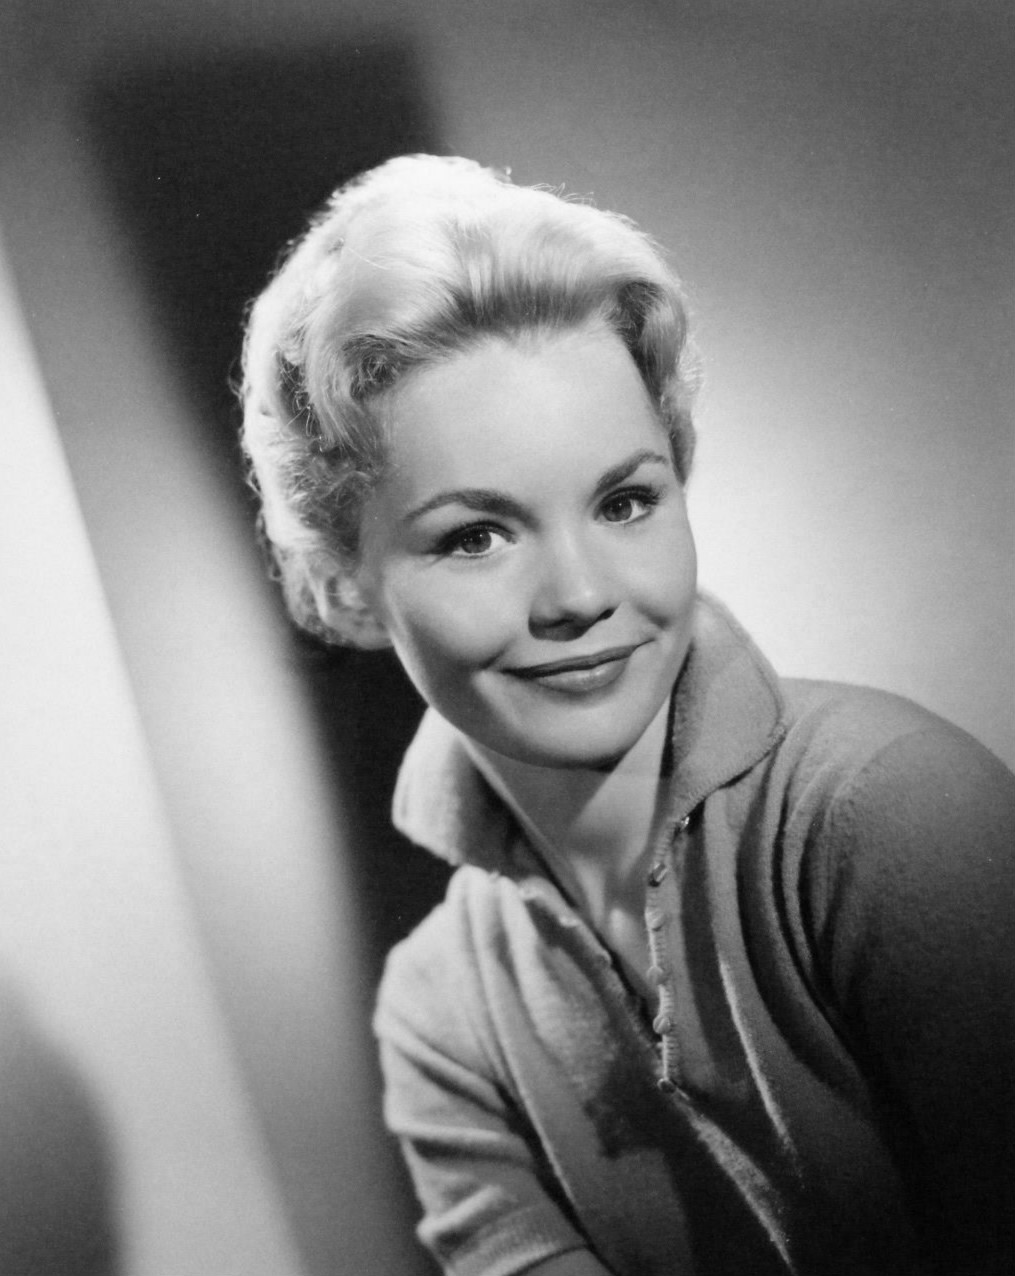 File:Tuesday Weld circa 1960.JPG - Wikimedia Commons